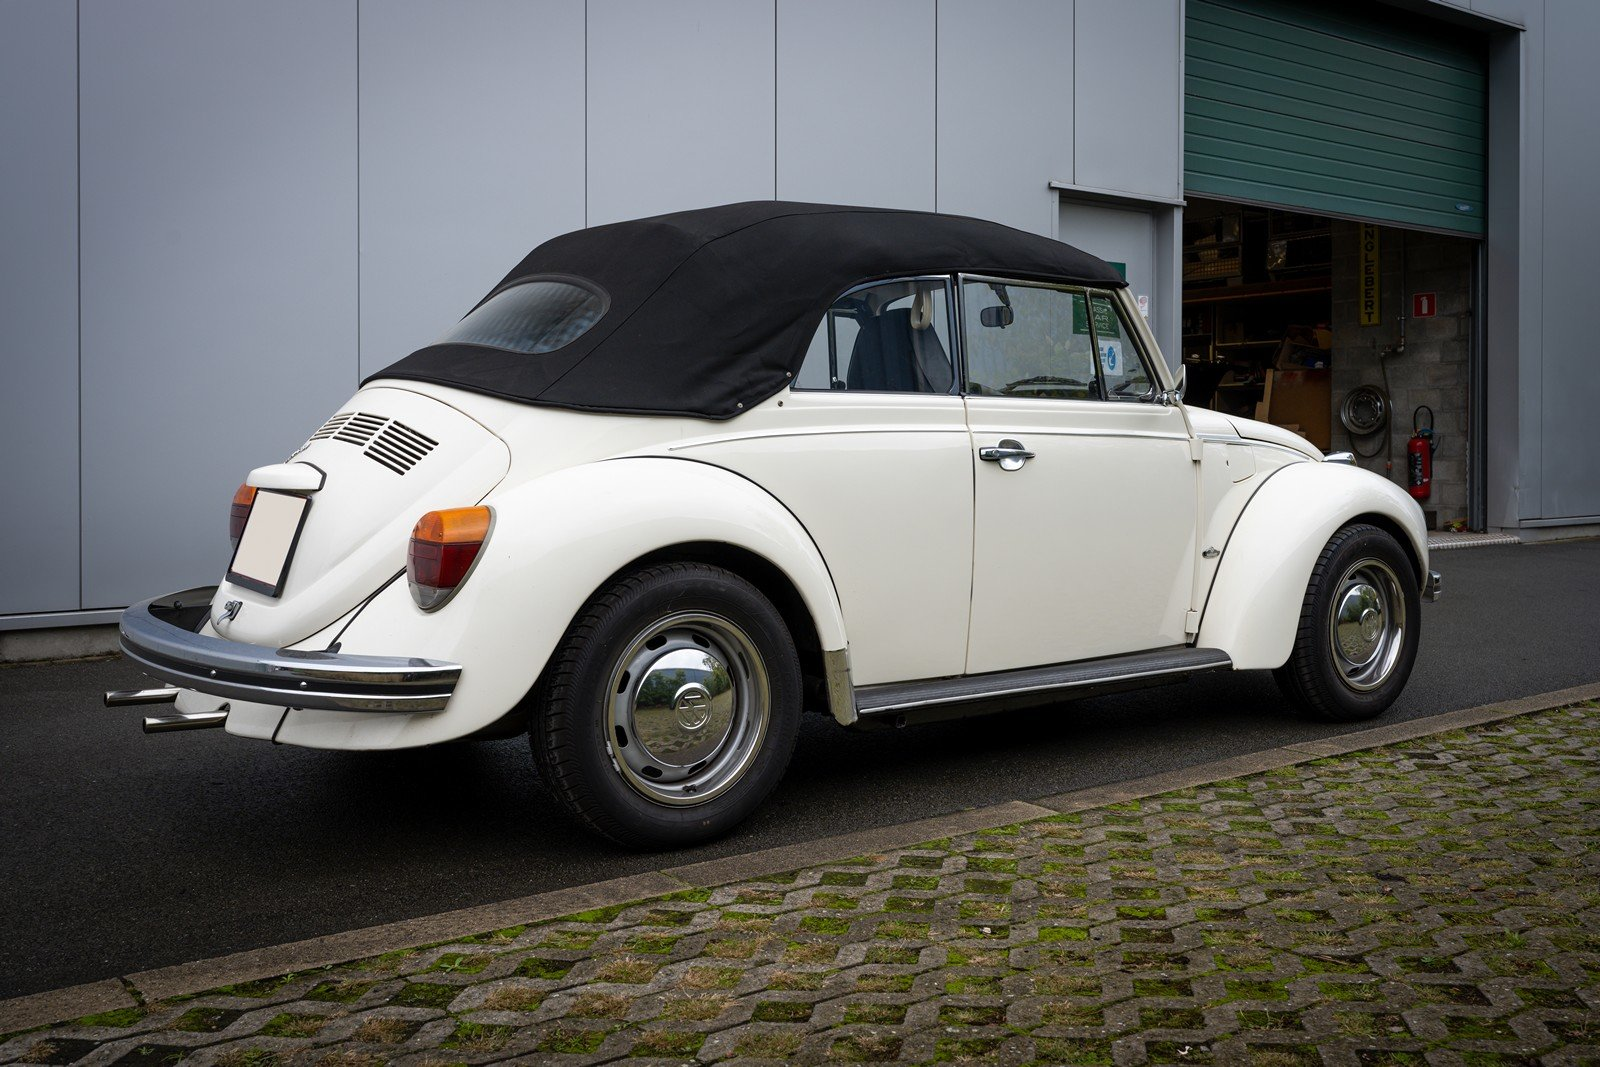 1973 Volkswagen Beetle Type 1303 Cabriolet For Sale (picture 8 of 39)